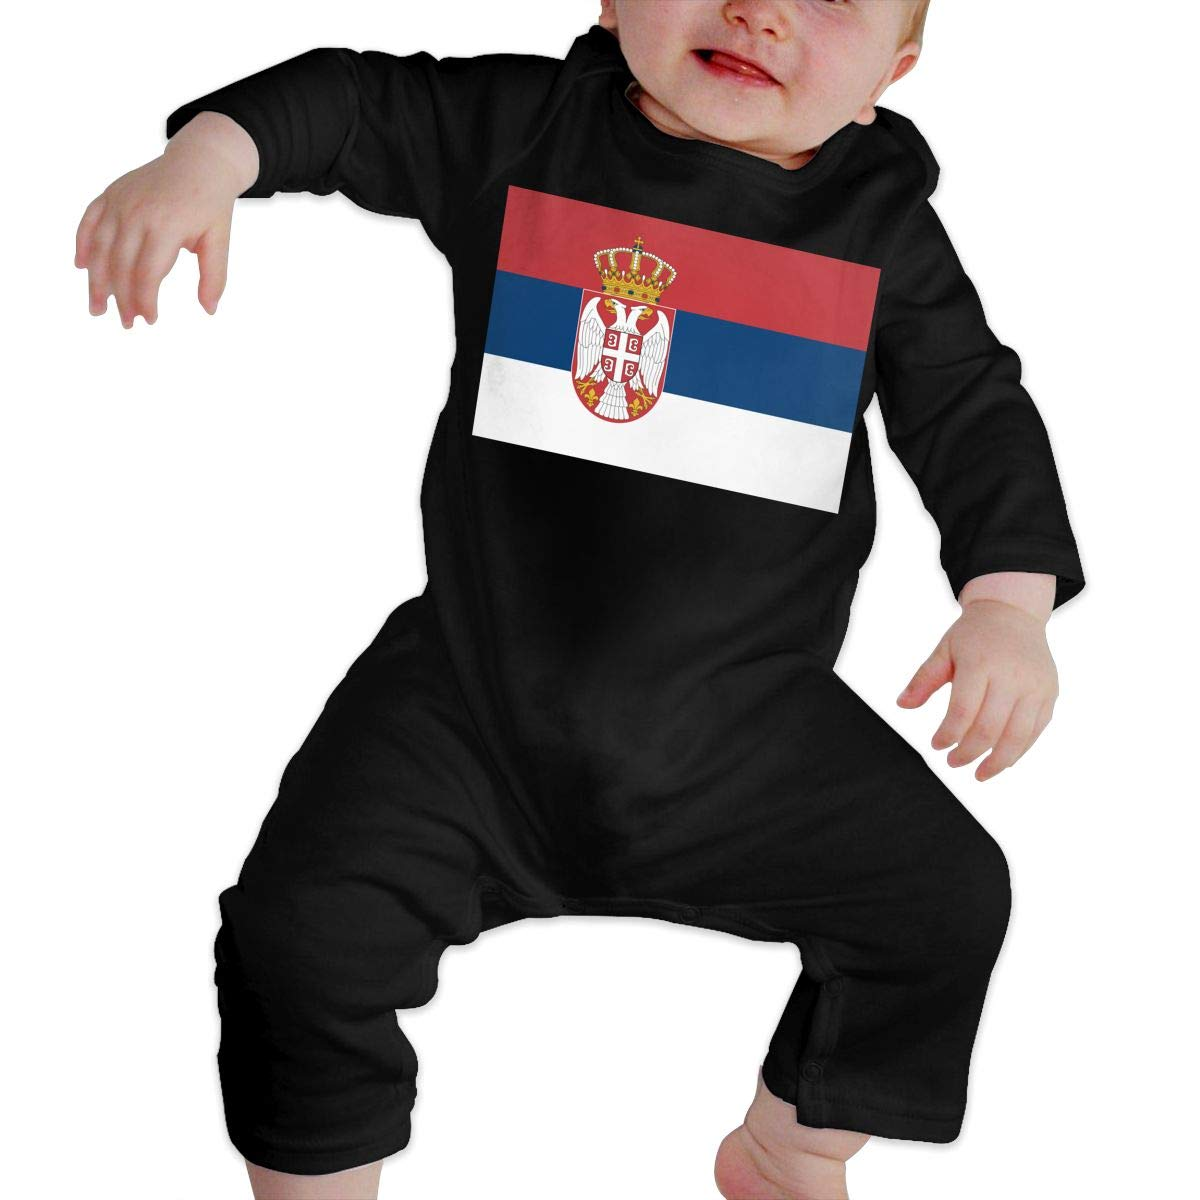 Cute Serbia Flag Playsuit U99oi-9 Long Sleeve Cotton Bodysuit for Unisex Baby